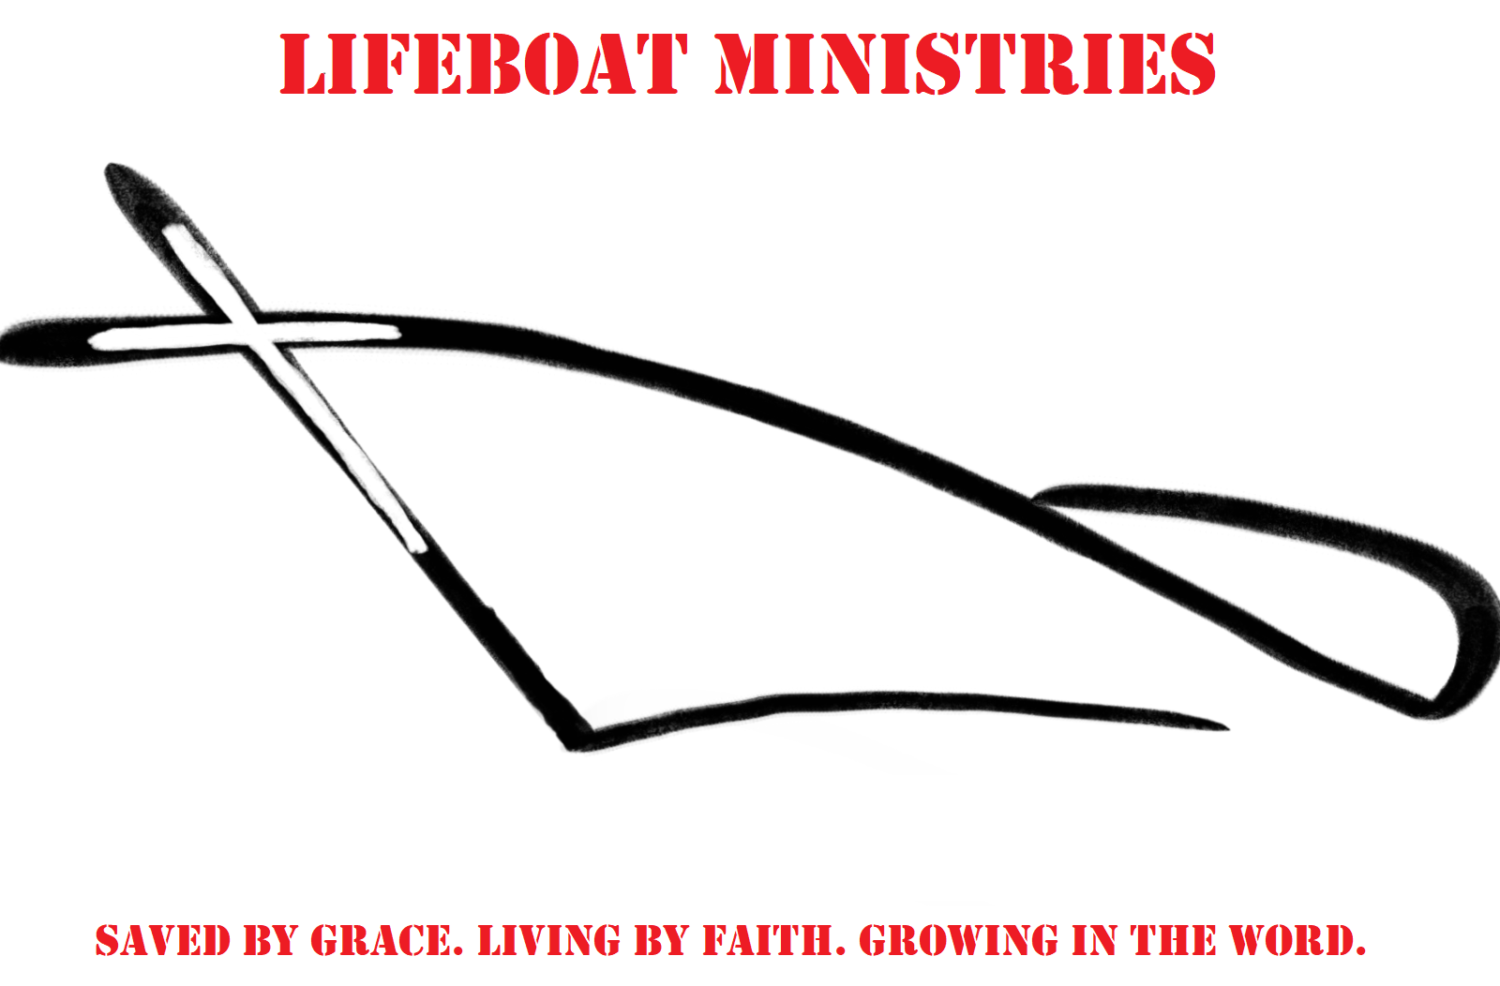 Lifeboat Ministries